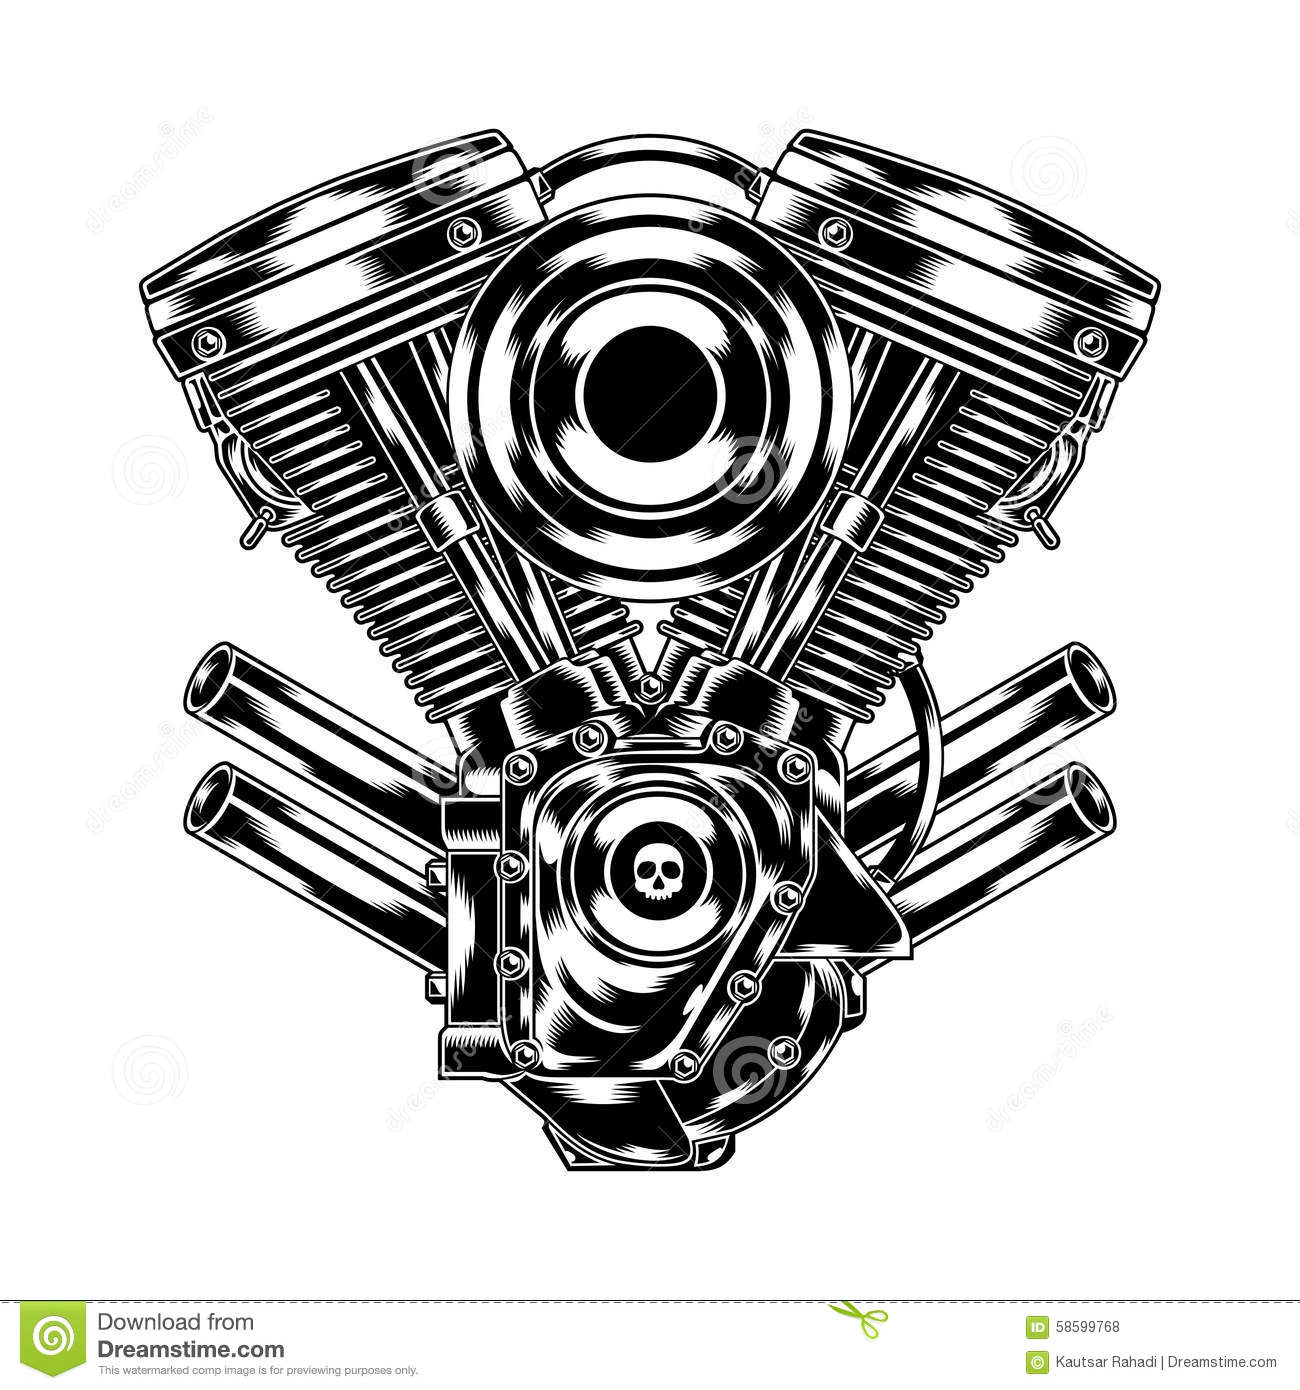 Motorcycle Engine Stock Vector Image 58599768